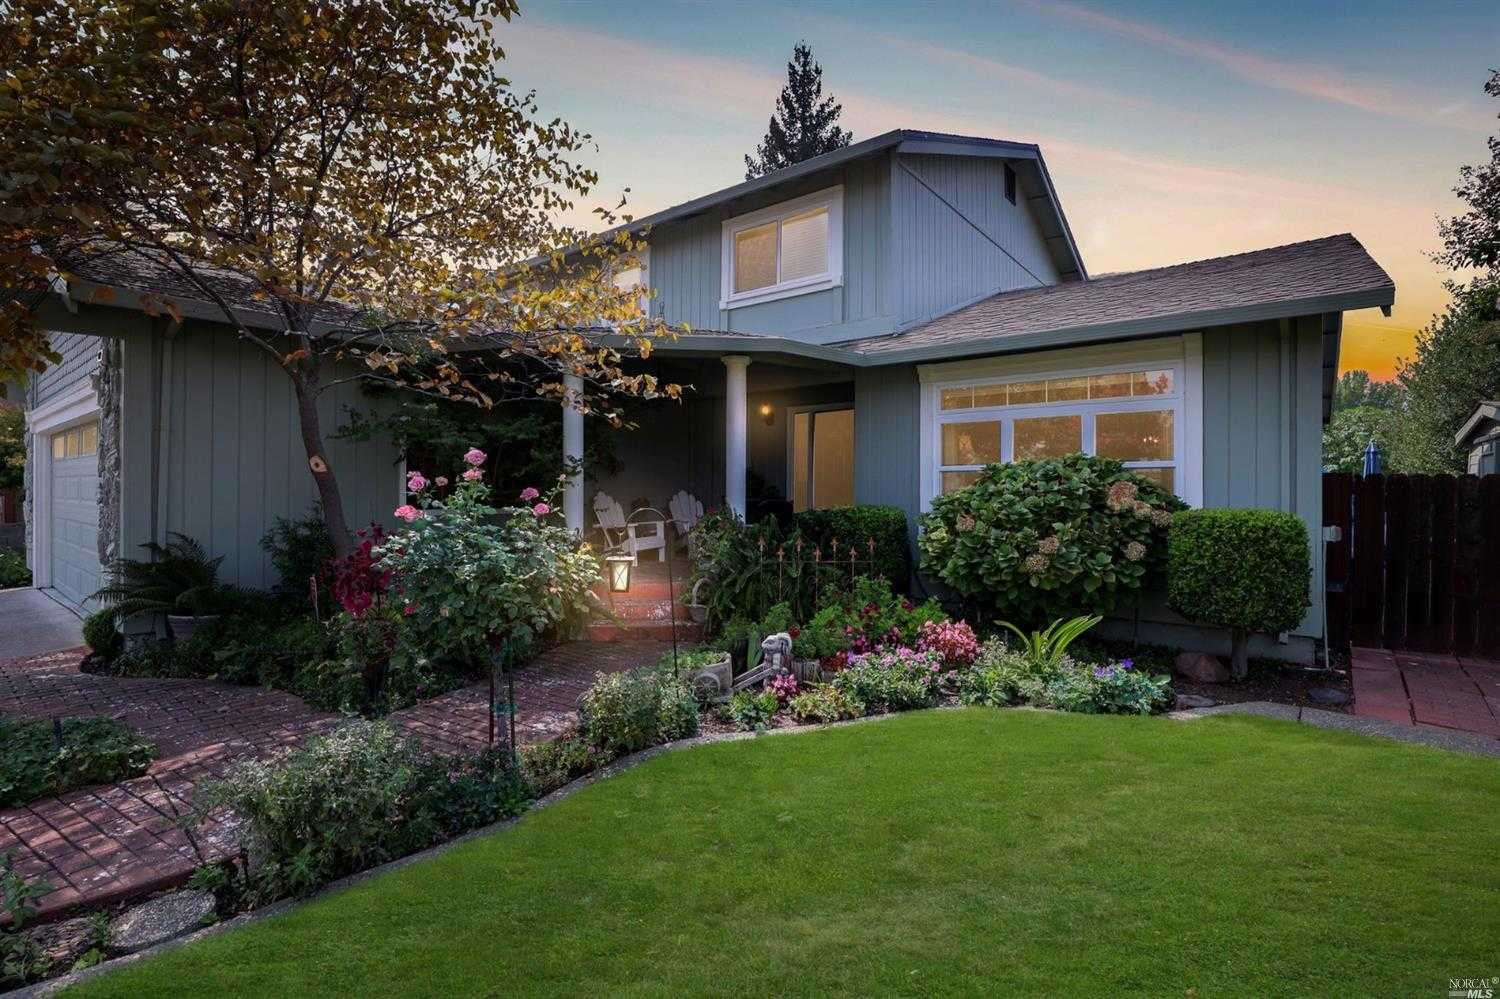 $649,000 - 5Br/3Ba -  for Sale in Vacaville